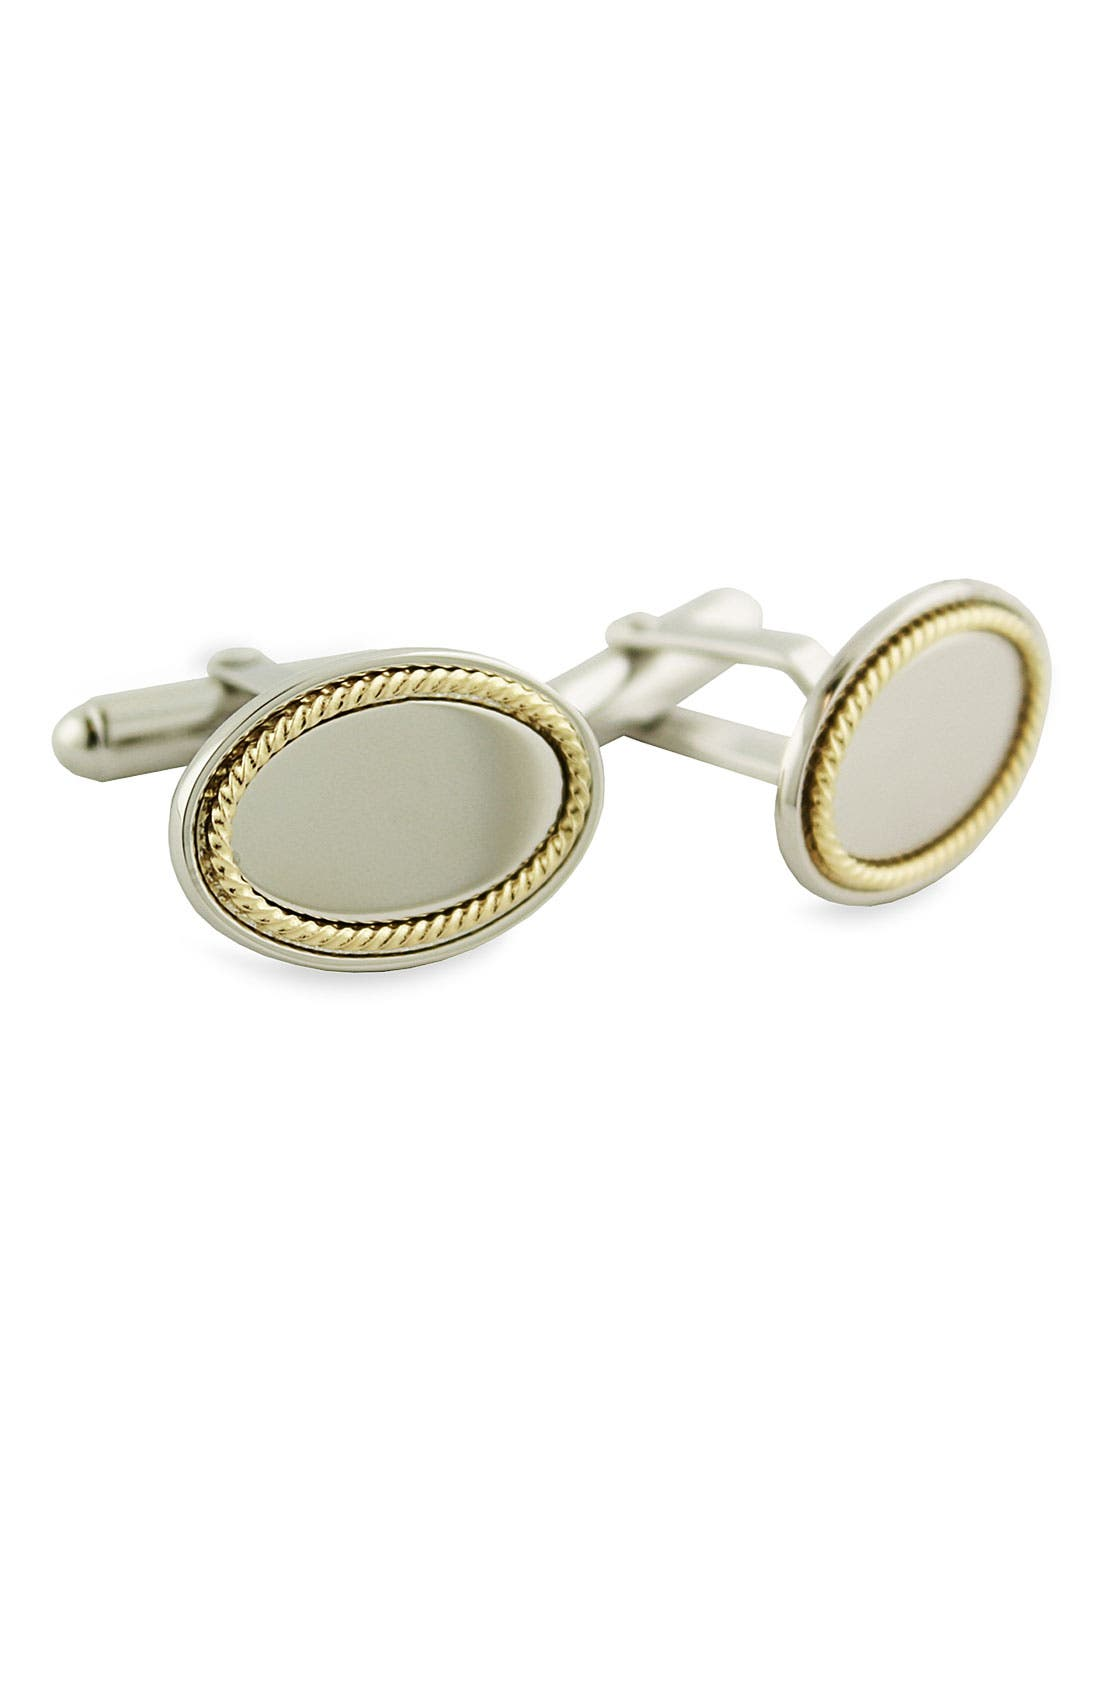 Alternate Image 1 Selected - David Donahue Gold & Sterling Silver Cuff Links